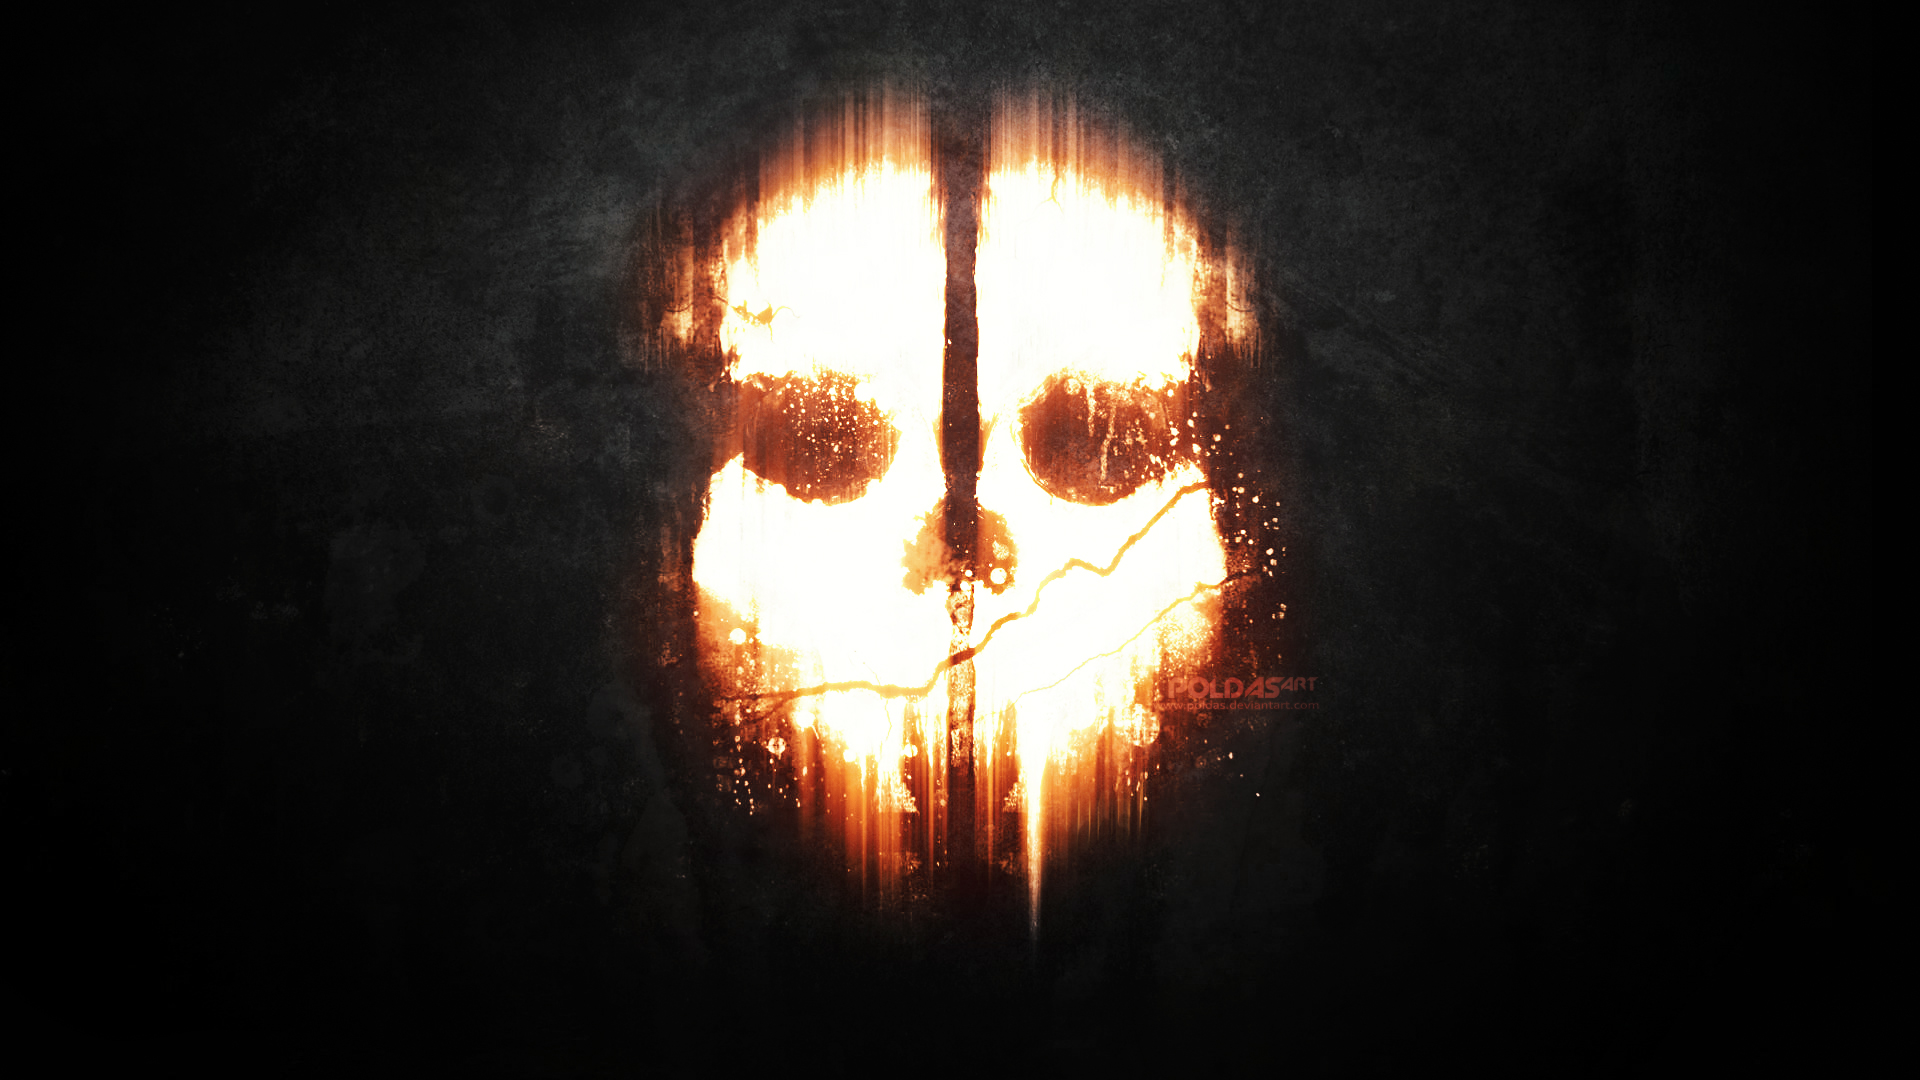 Call of Duty Ghosts dark mask skull wallpaper background 1920x1080